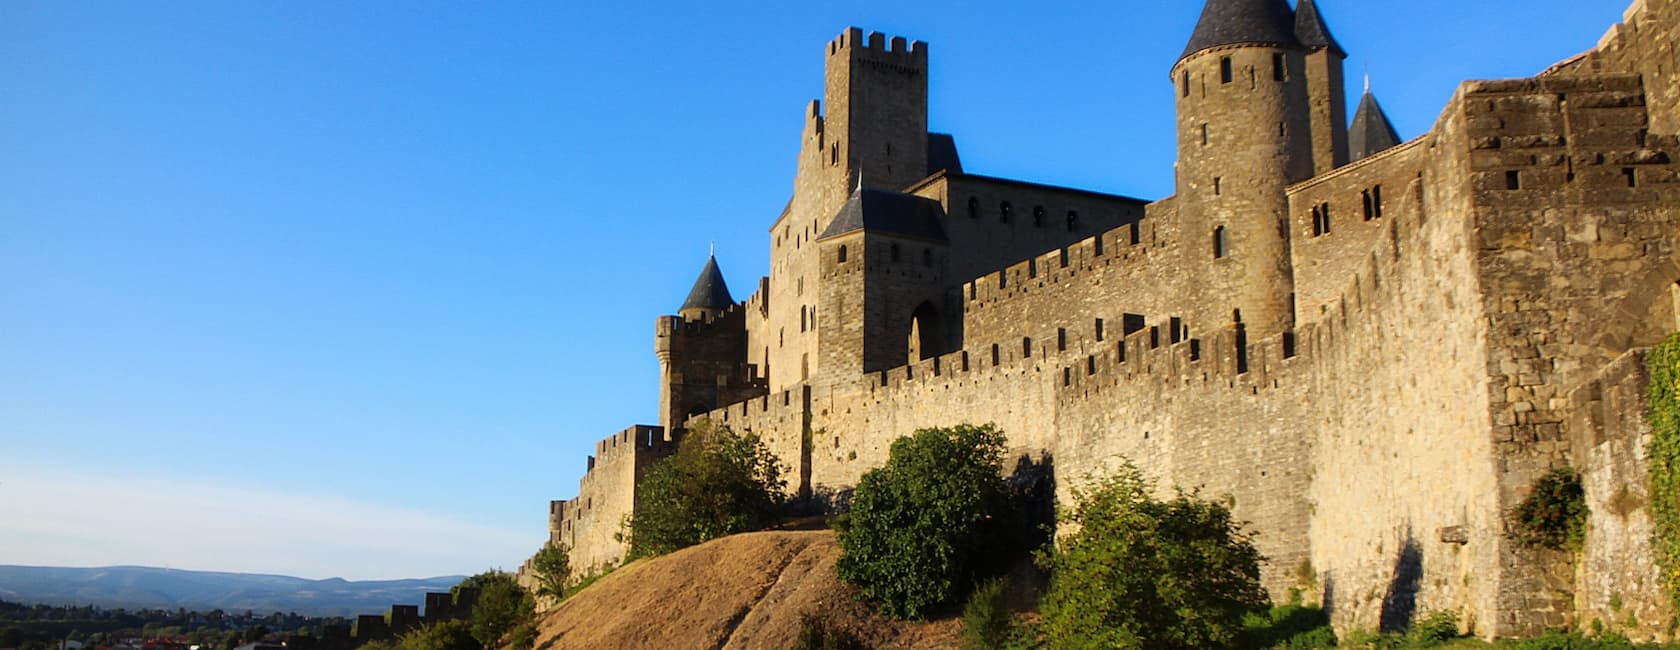 Locations de vacances : Carcassonne